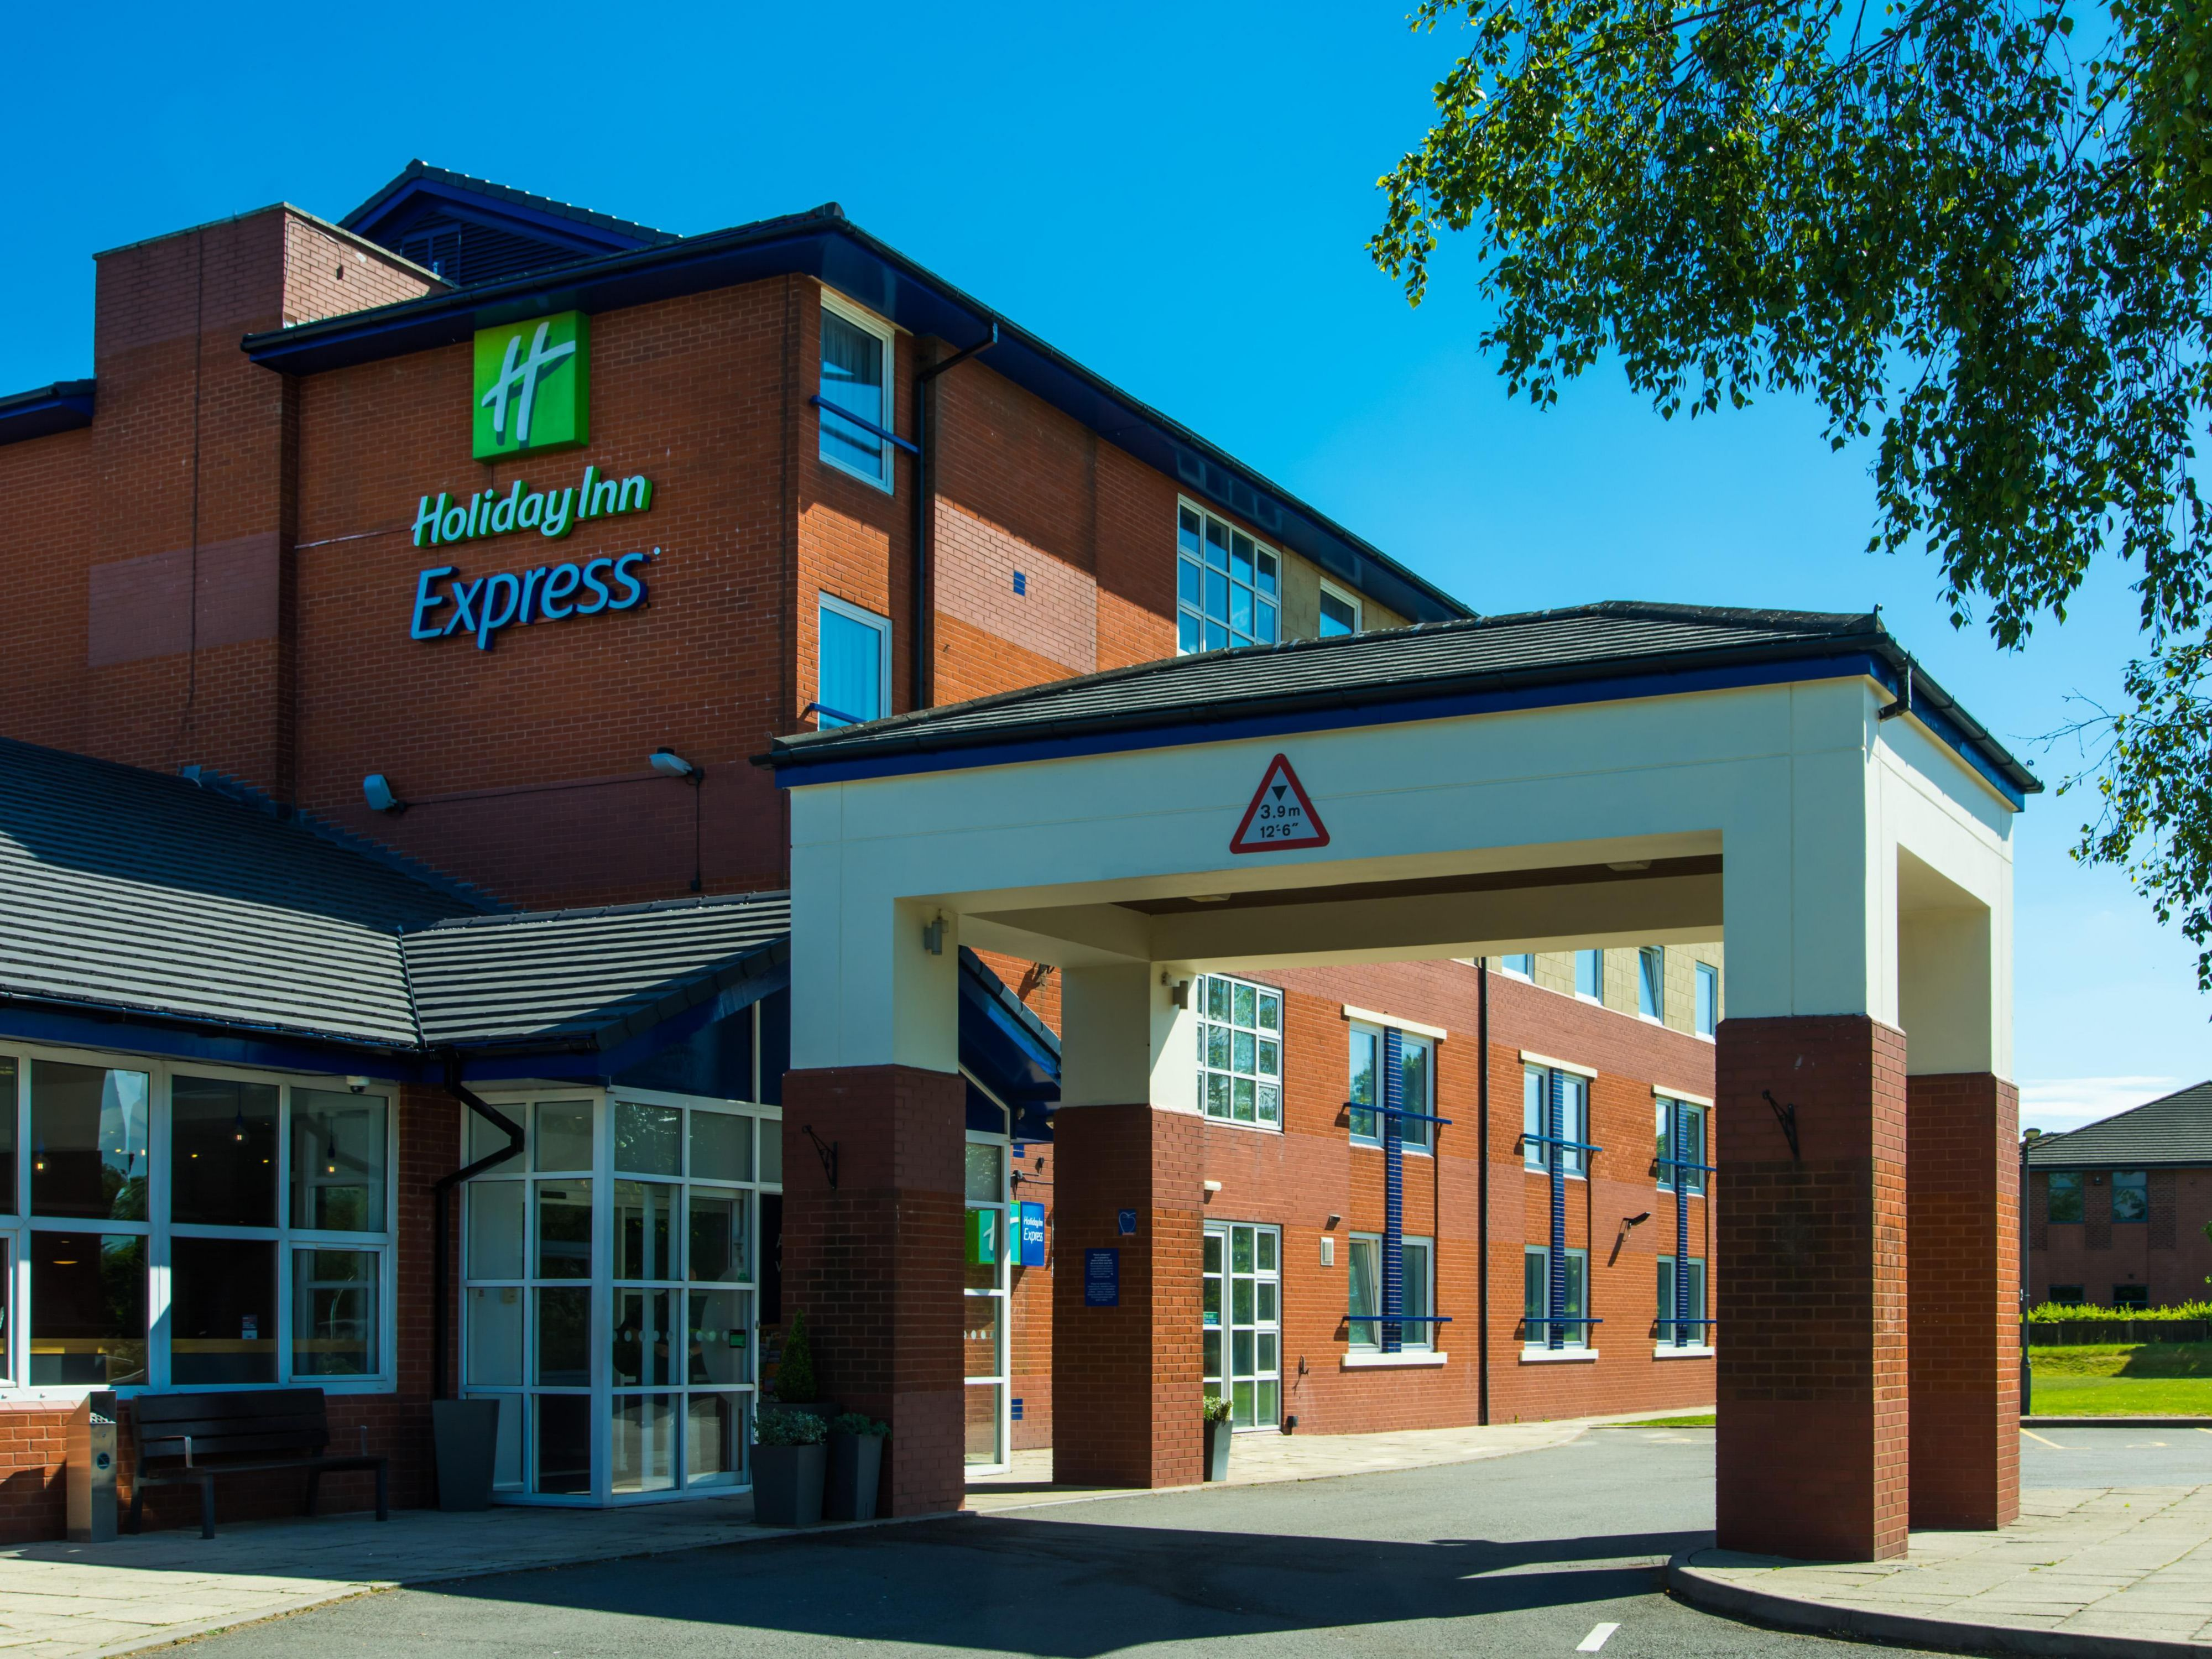 5 reasons to choose Holiday Inn Express Burton on Trent